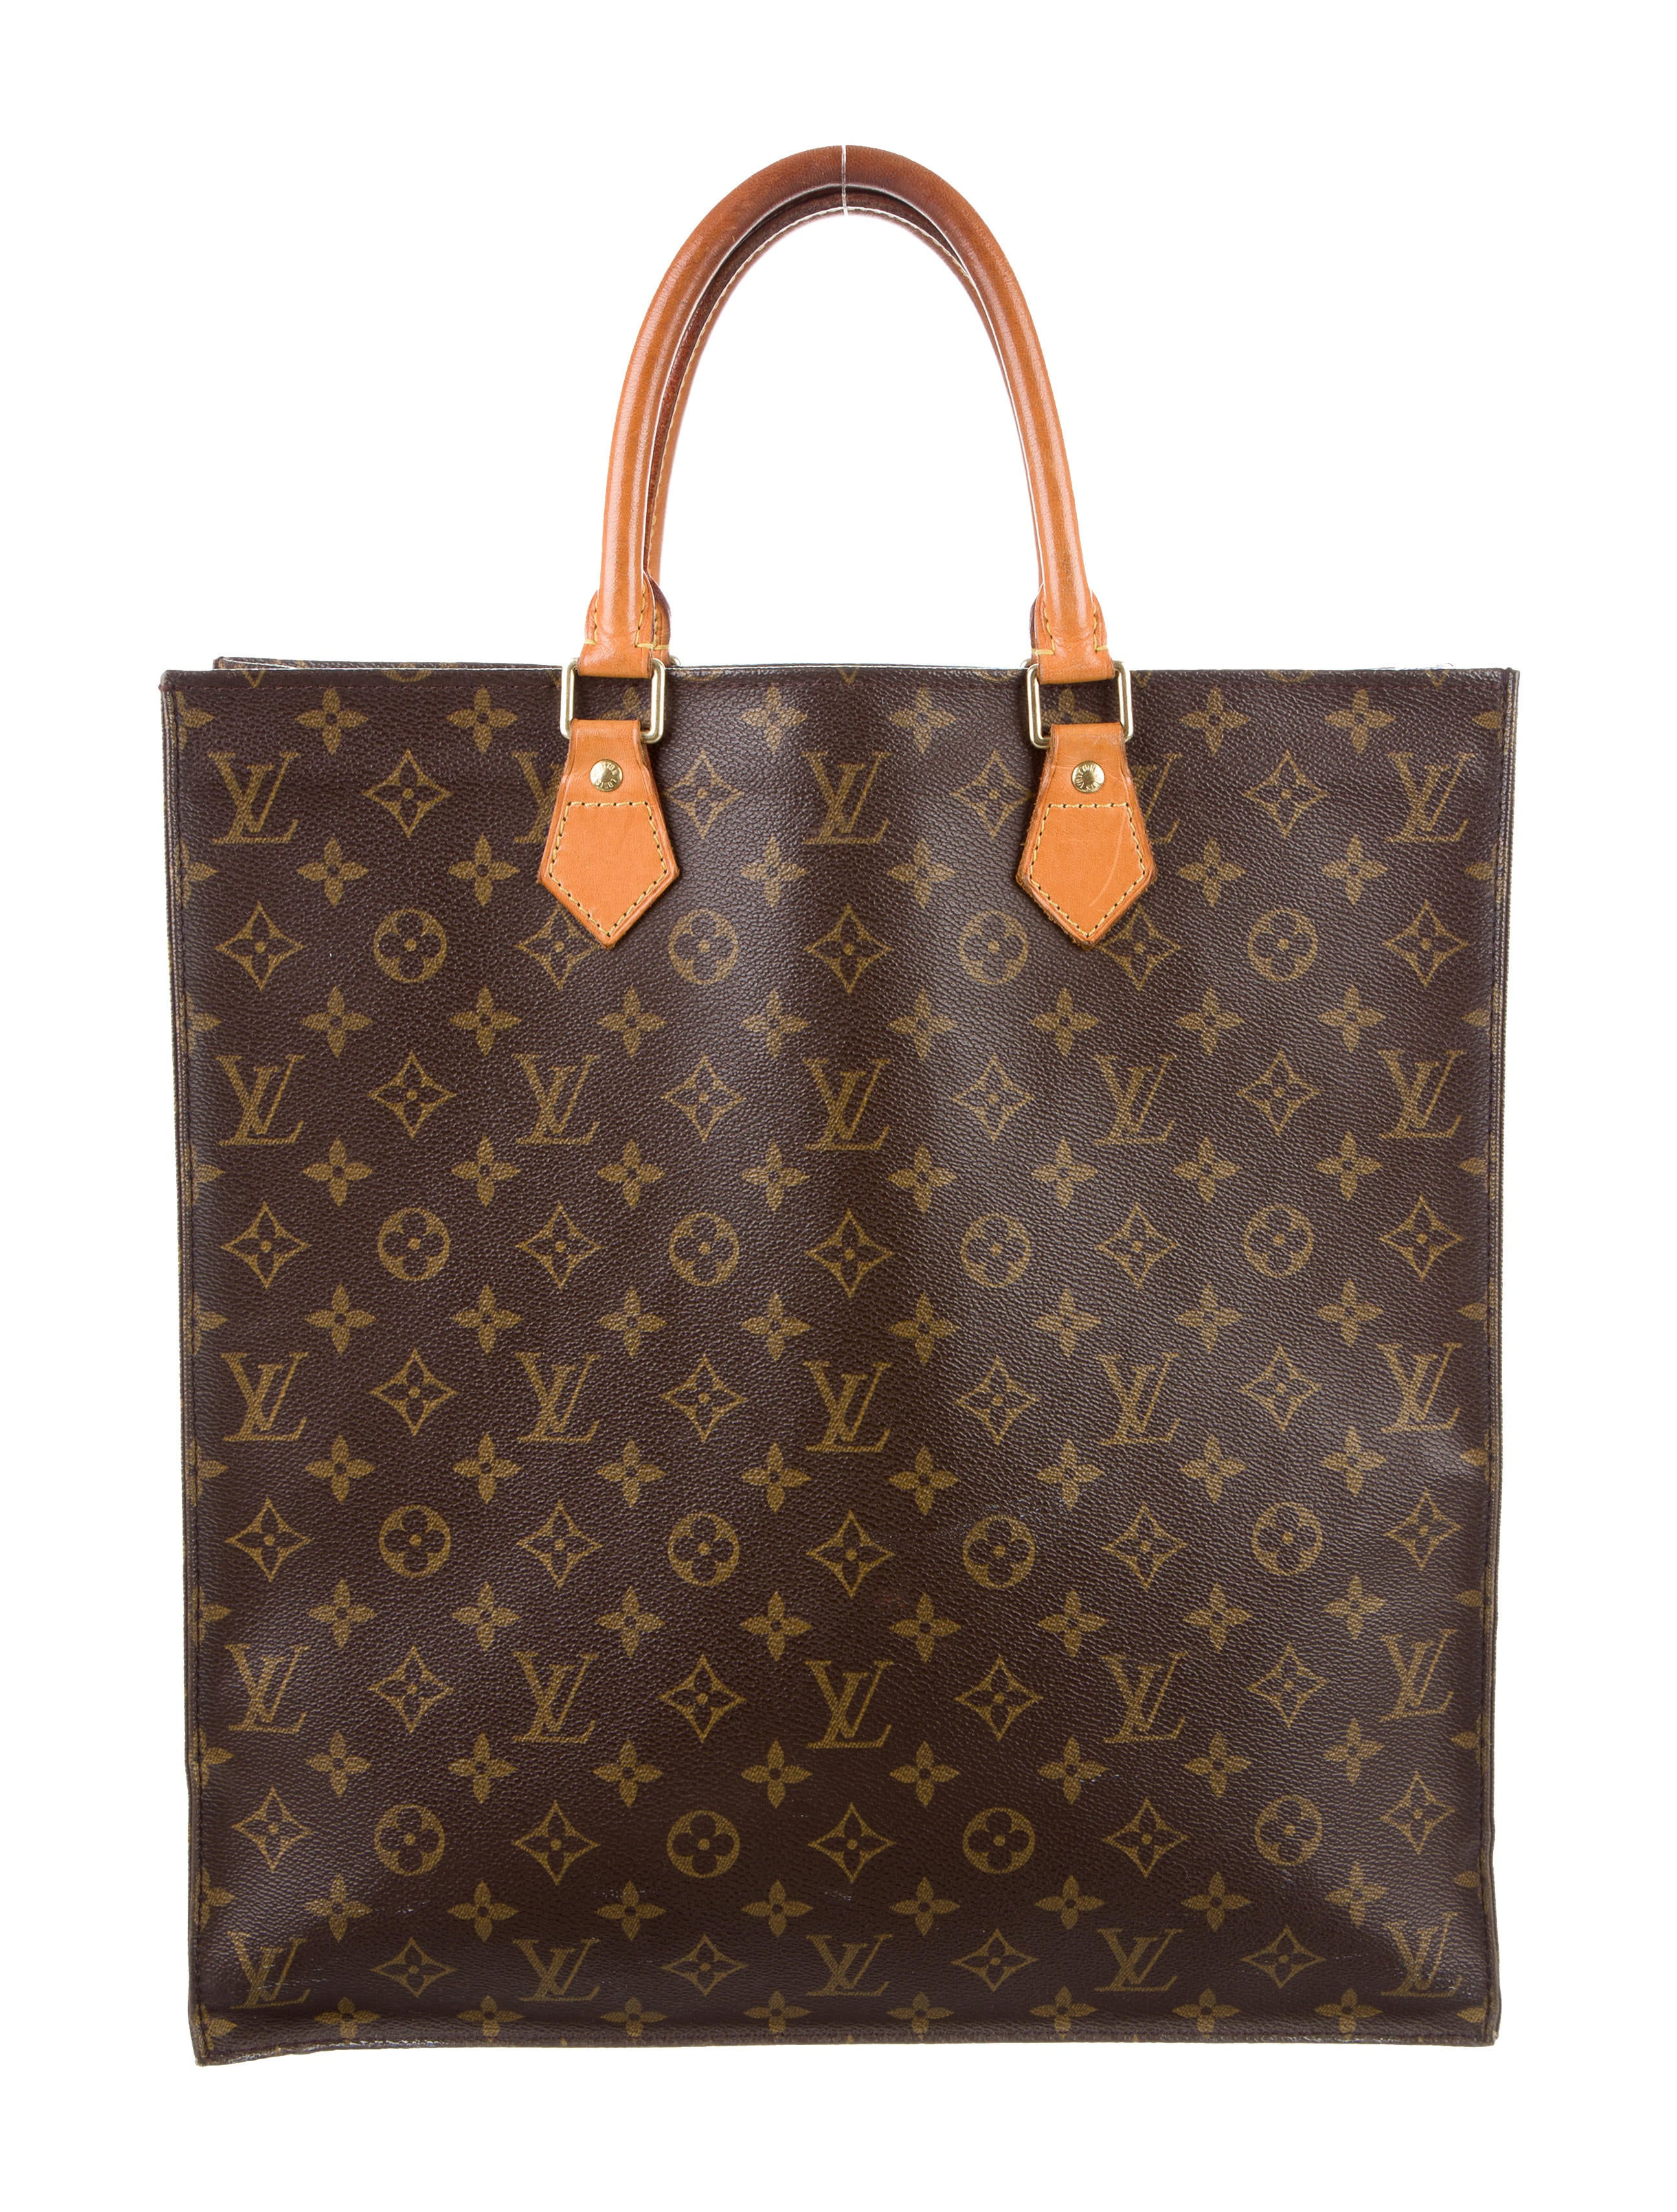 Louis vuitton monogram sac plat handbags lou121387 for Louis vuitton monogram miroir sac plat